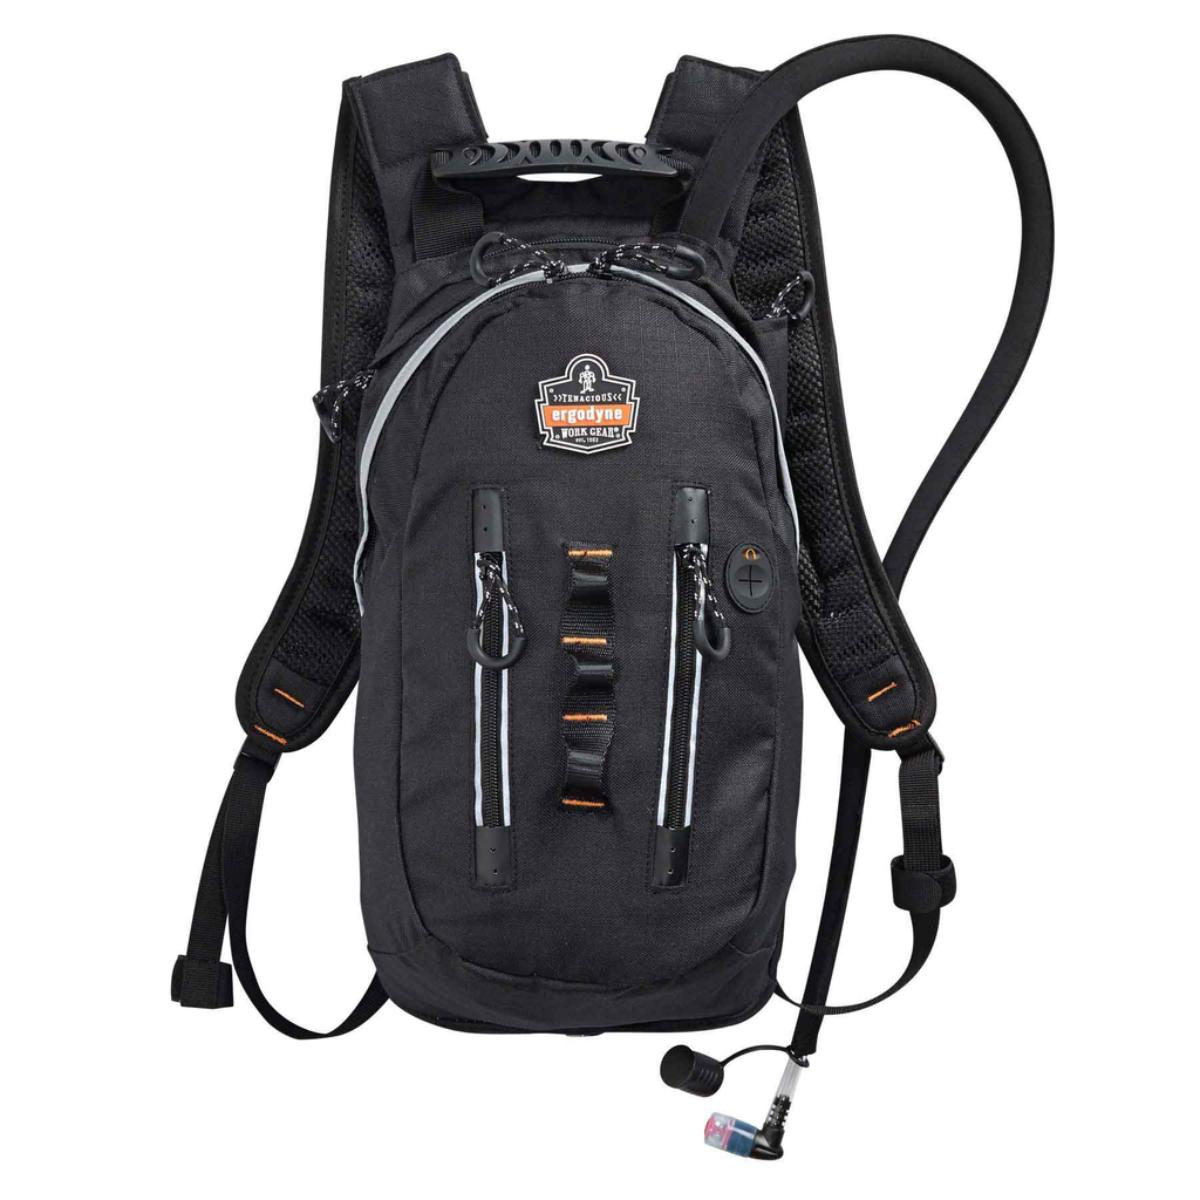 5157 3 ltr Black Premium Cargo Hydration Pack